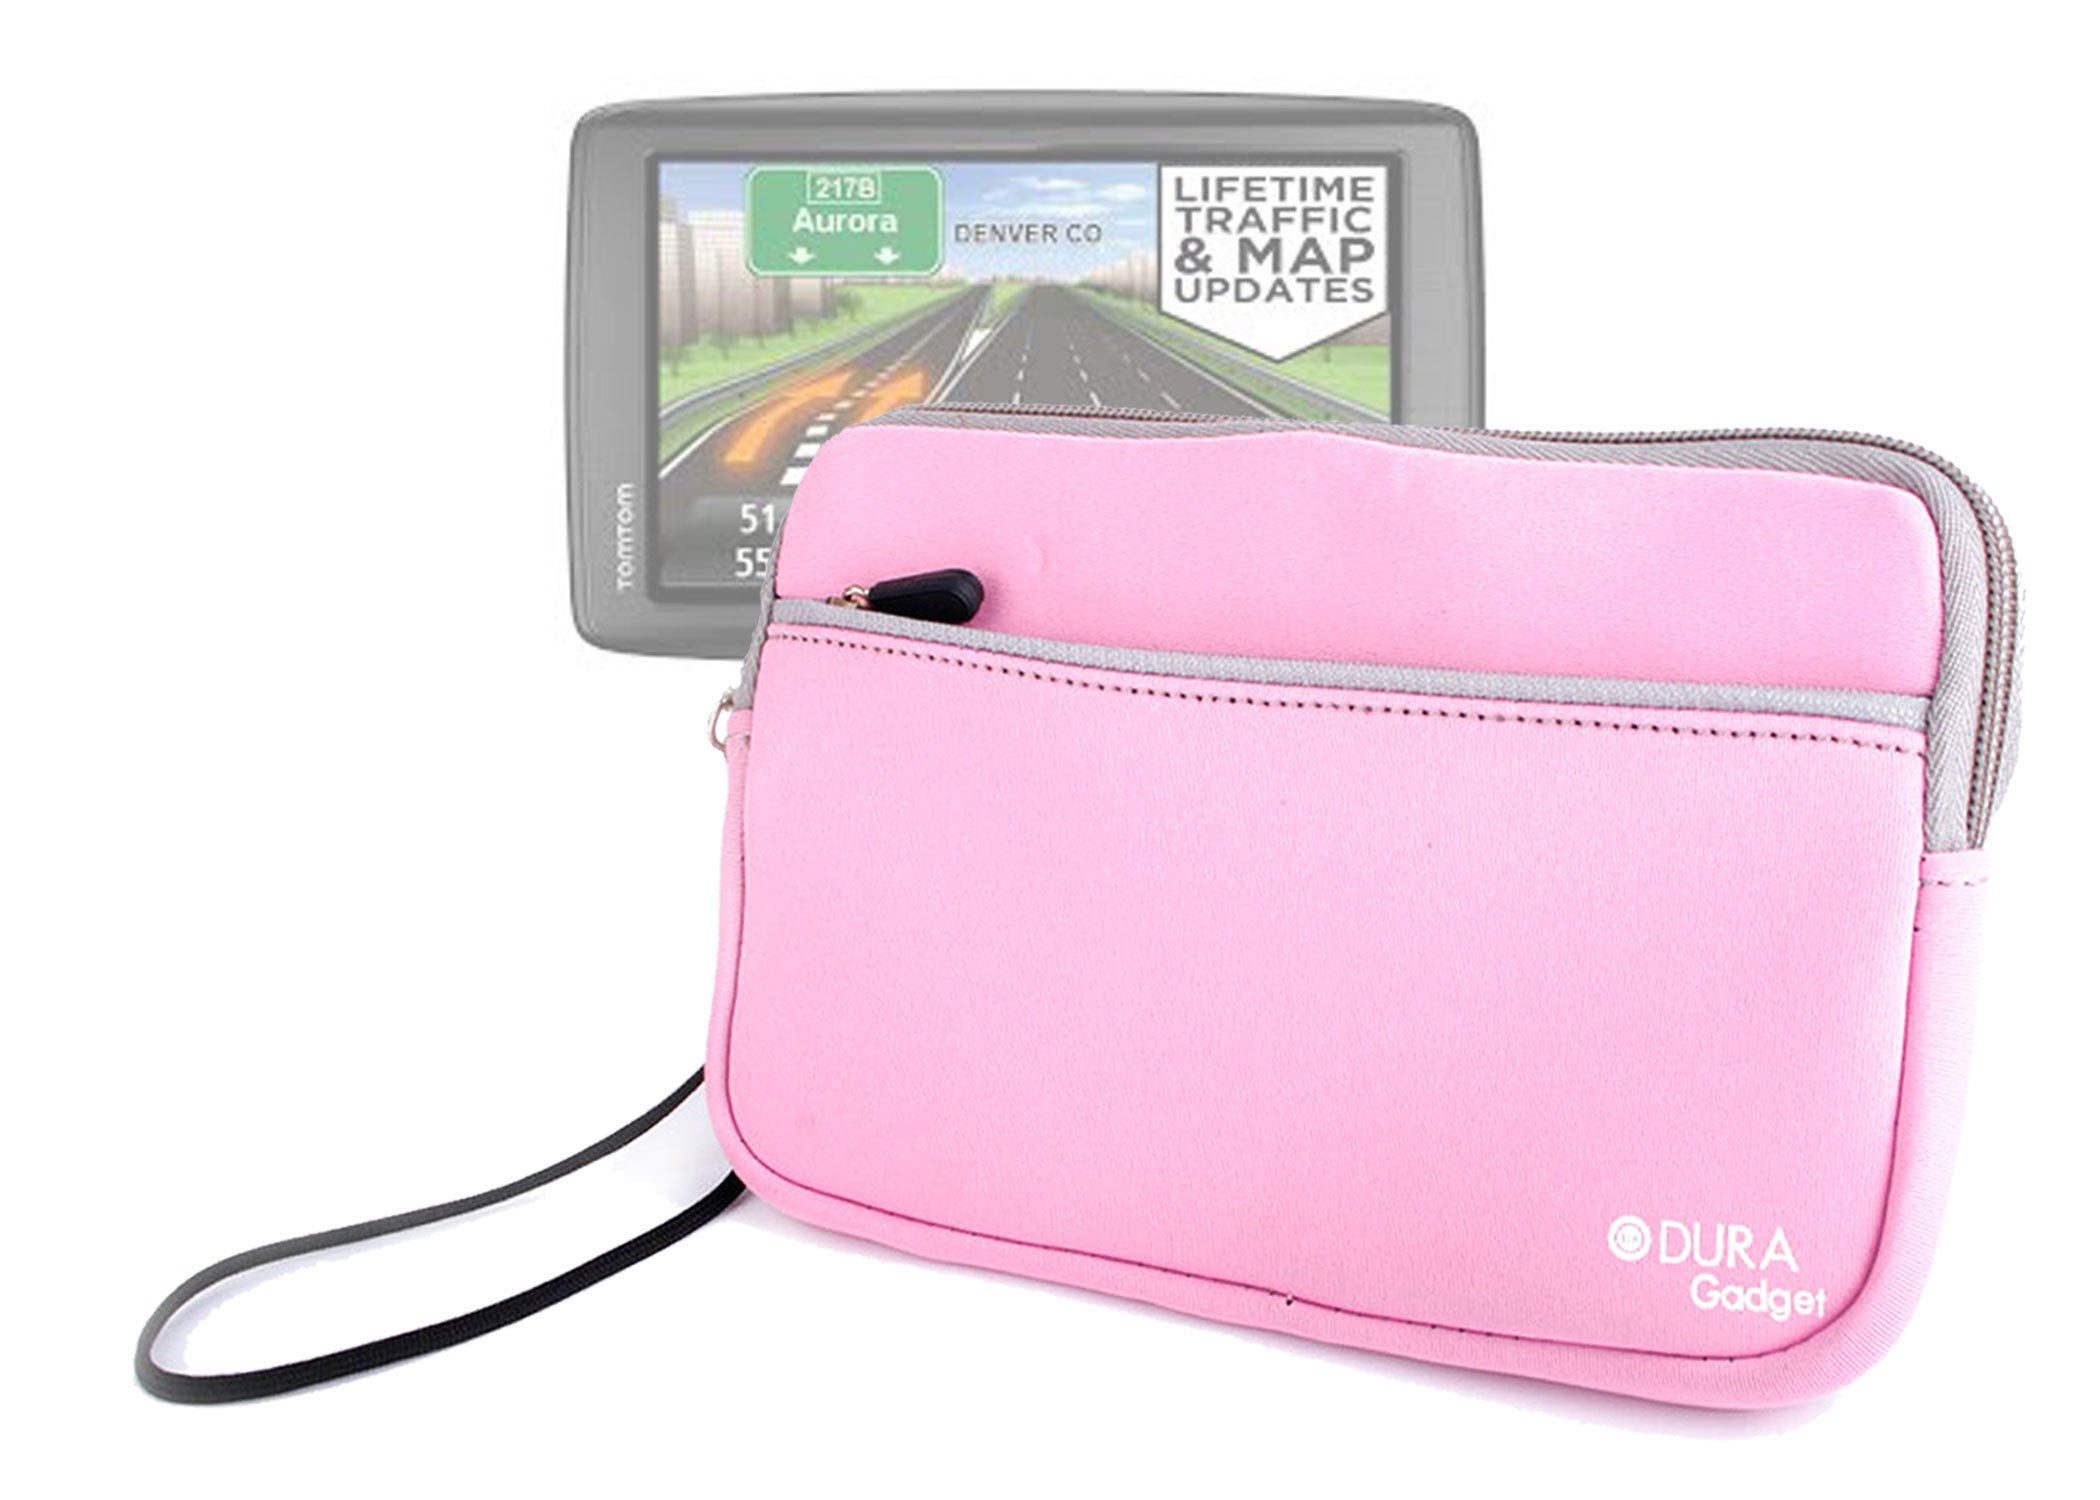 DURAGADGET Pink ''Travel'' Water Repellent Neoprene Sleeve With Front Storage Pocket For TomTom VIA 1605TM 6-Inch GPS Navigator with Lifetime Traffic & Maps & TomTom VIA 1605M GPS Navigator with Lifetime Maps